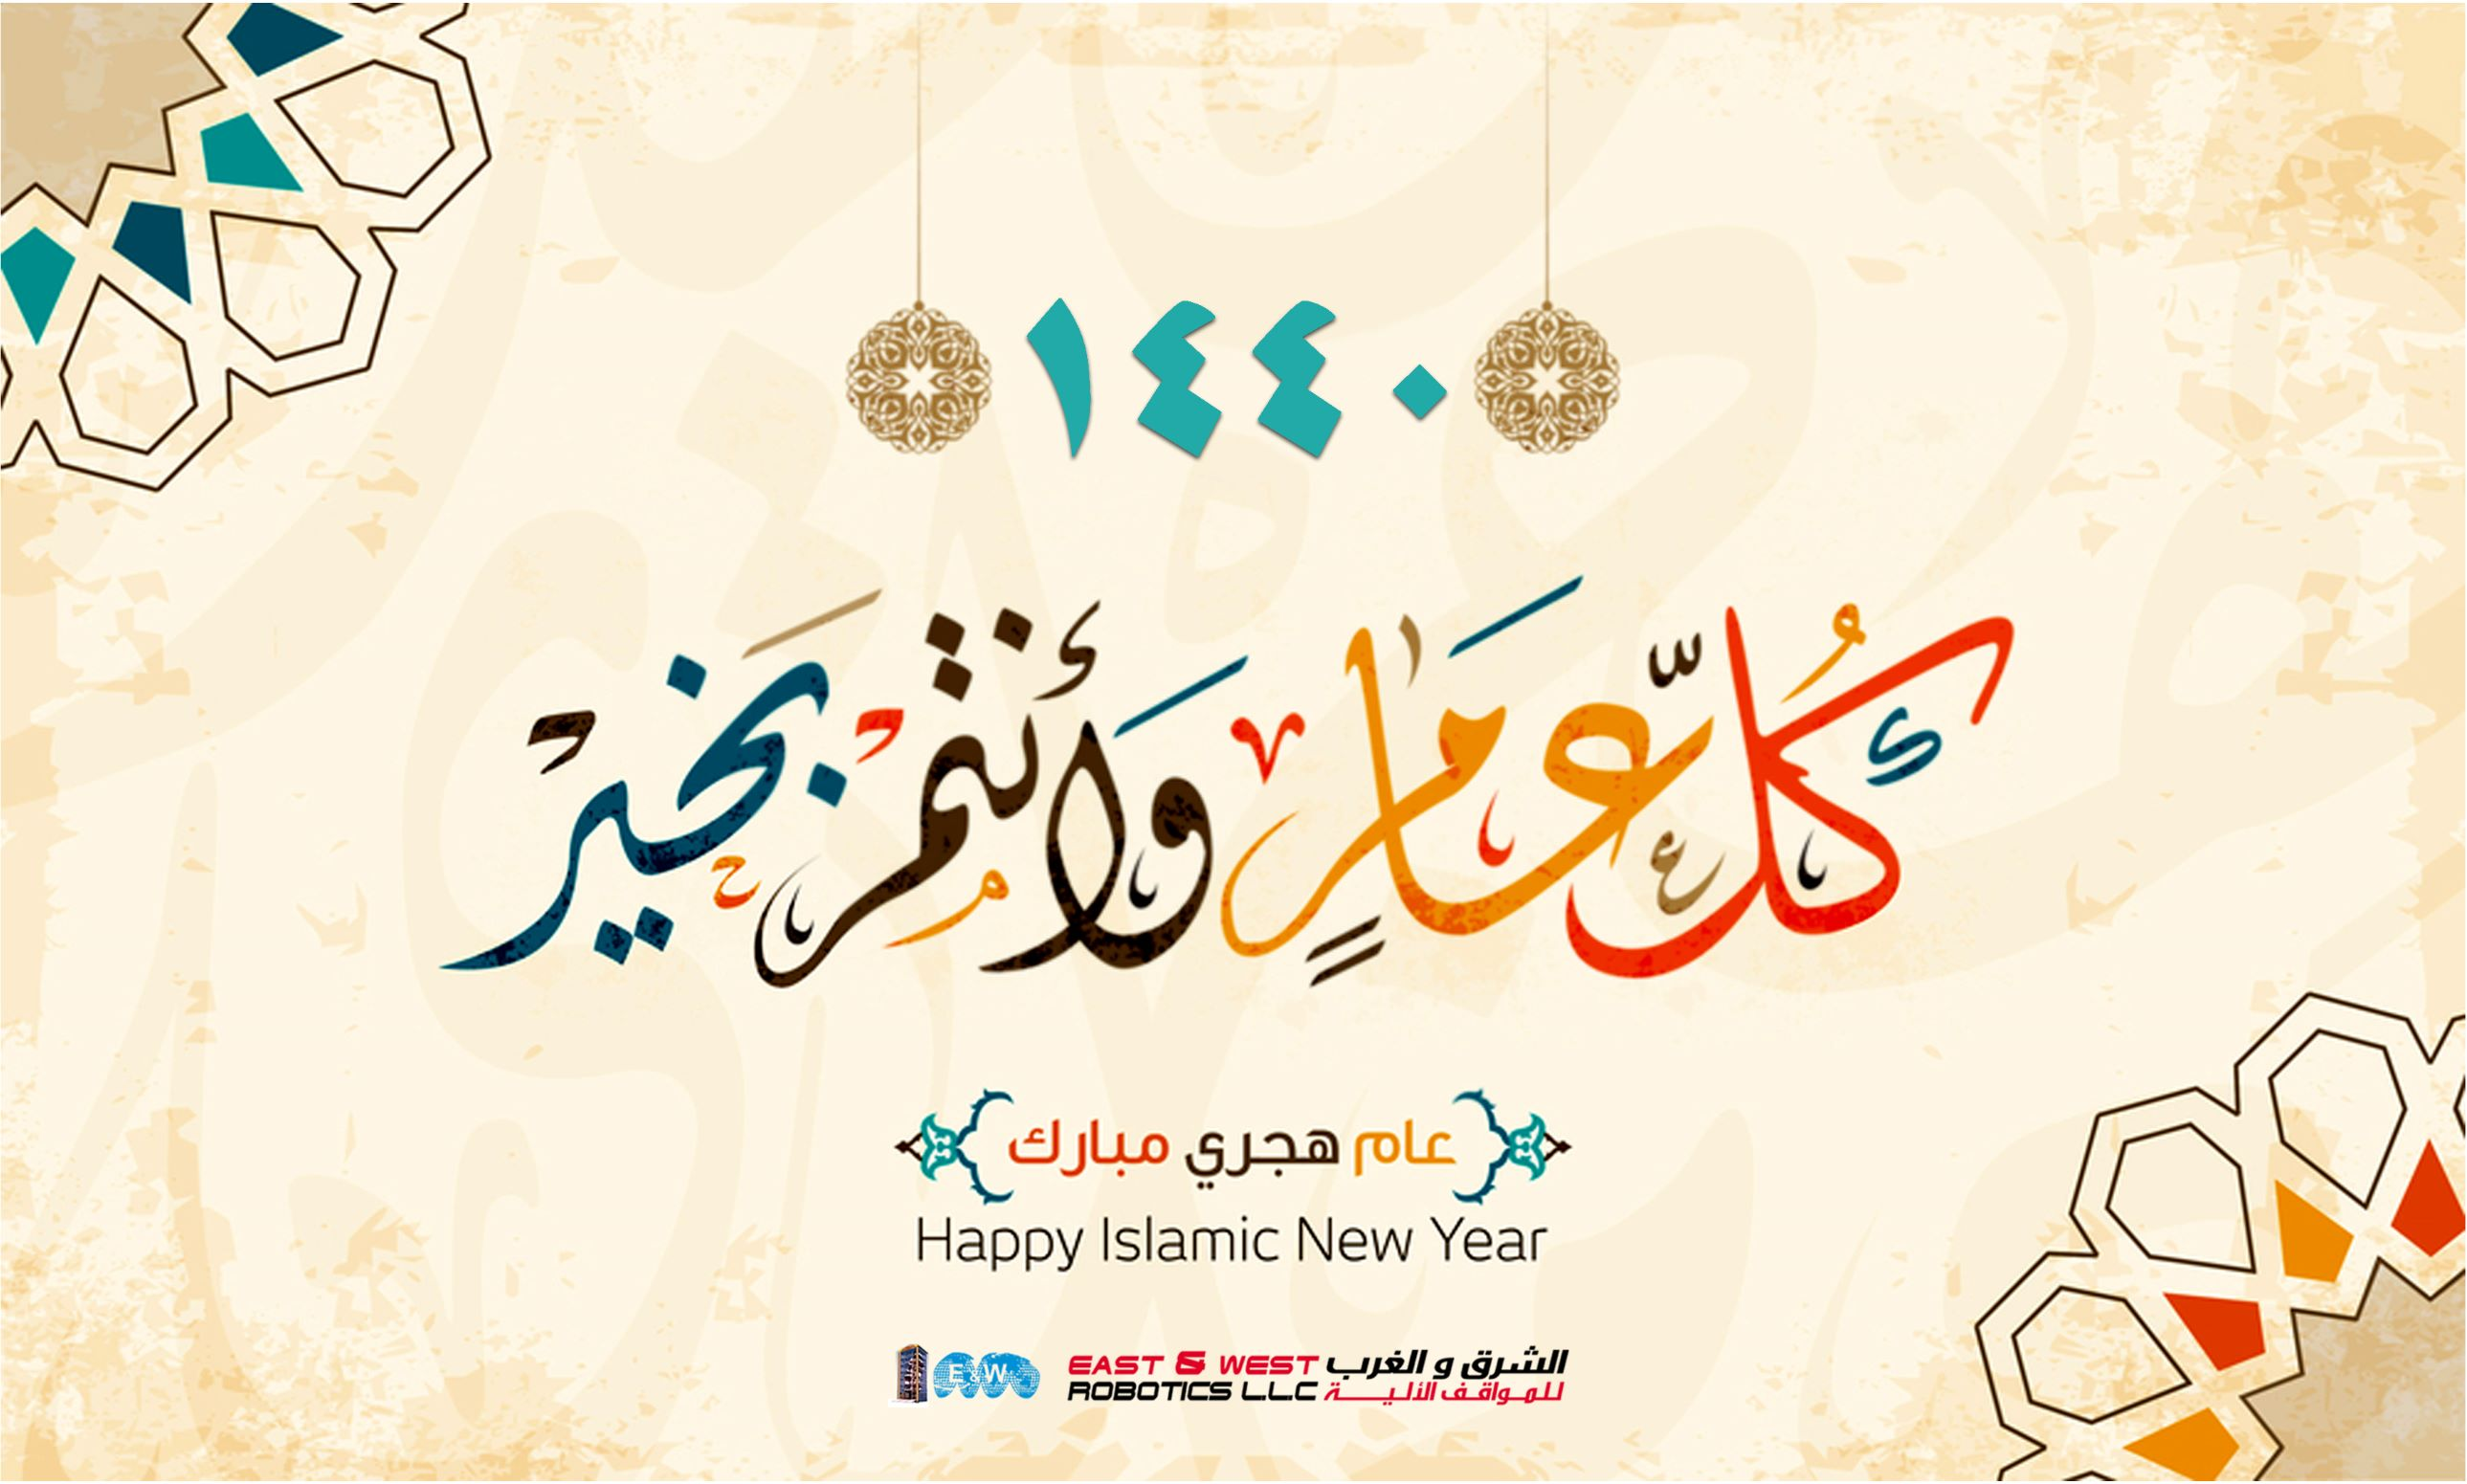 happy islamic new year al marwan group extends its best wishes to the ruler people and residents of the uae on the occasion of the islamic new year